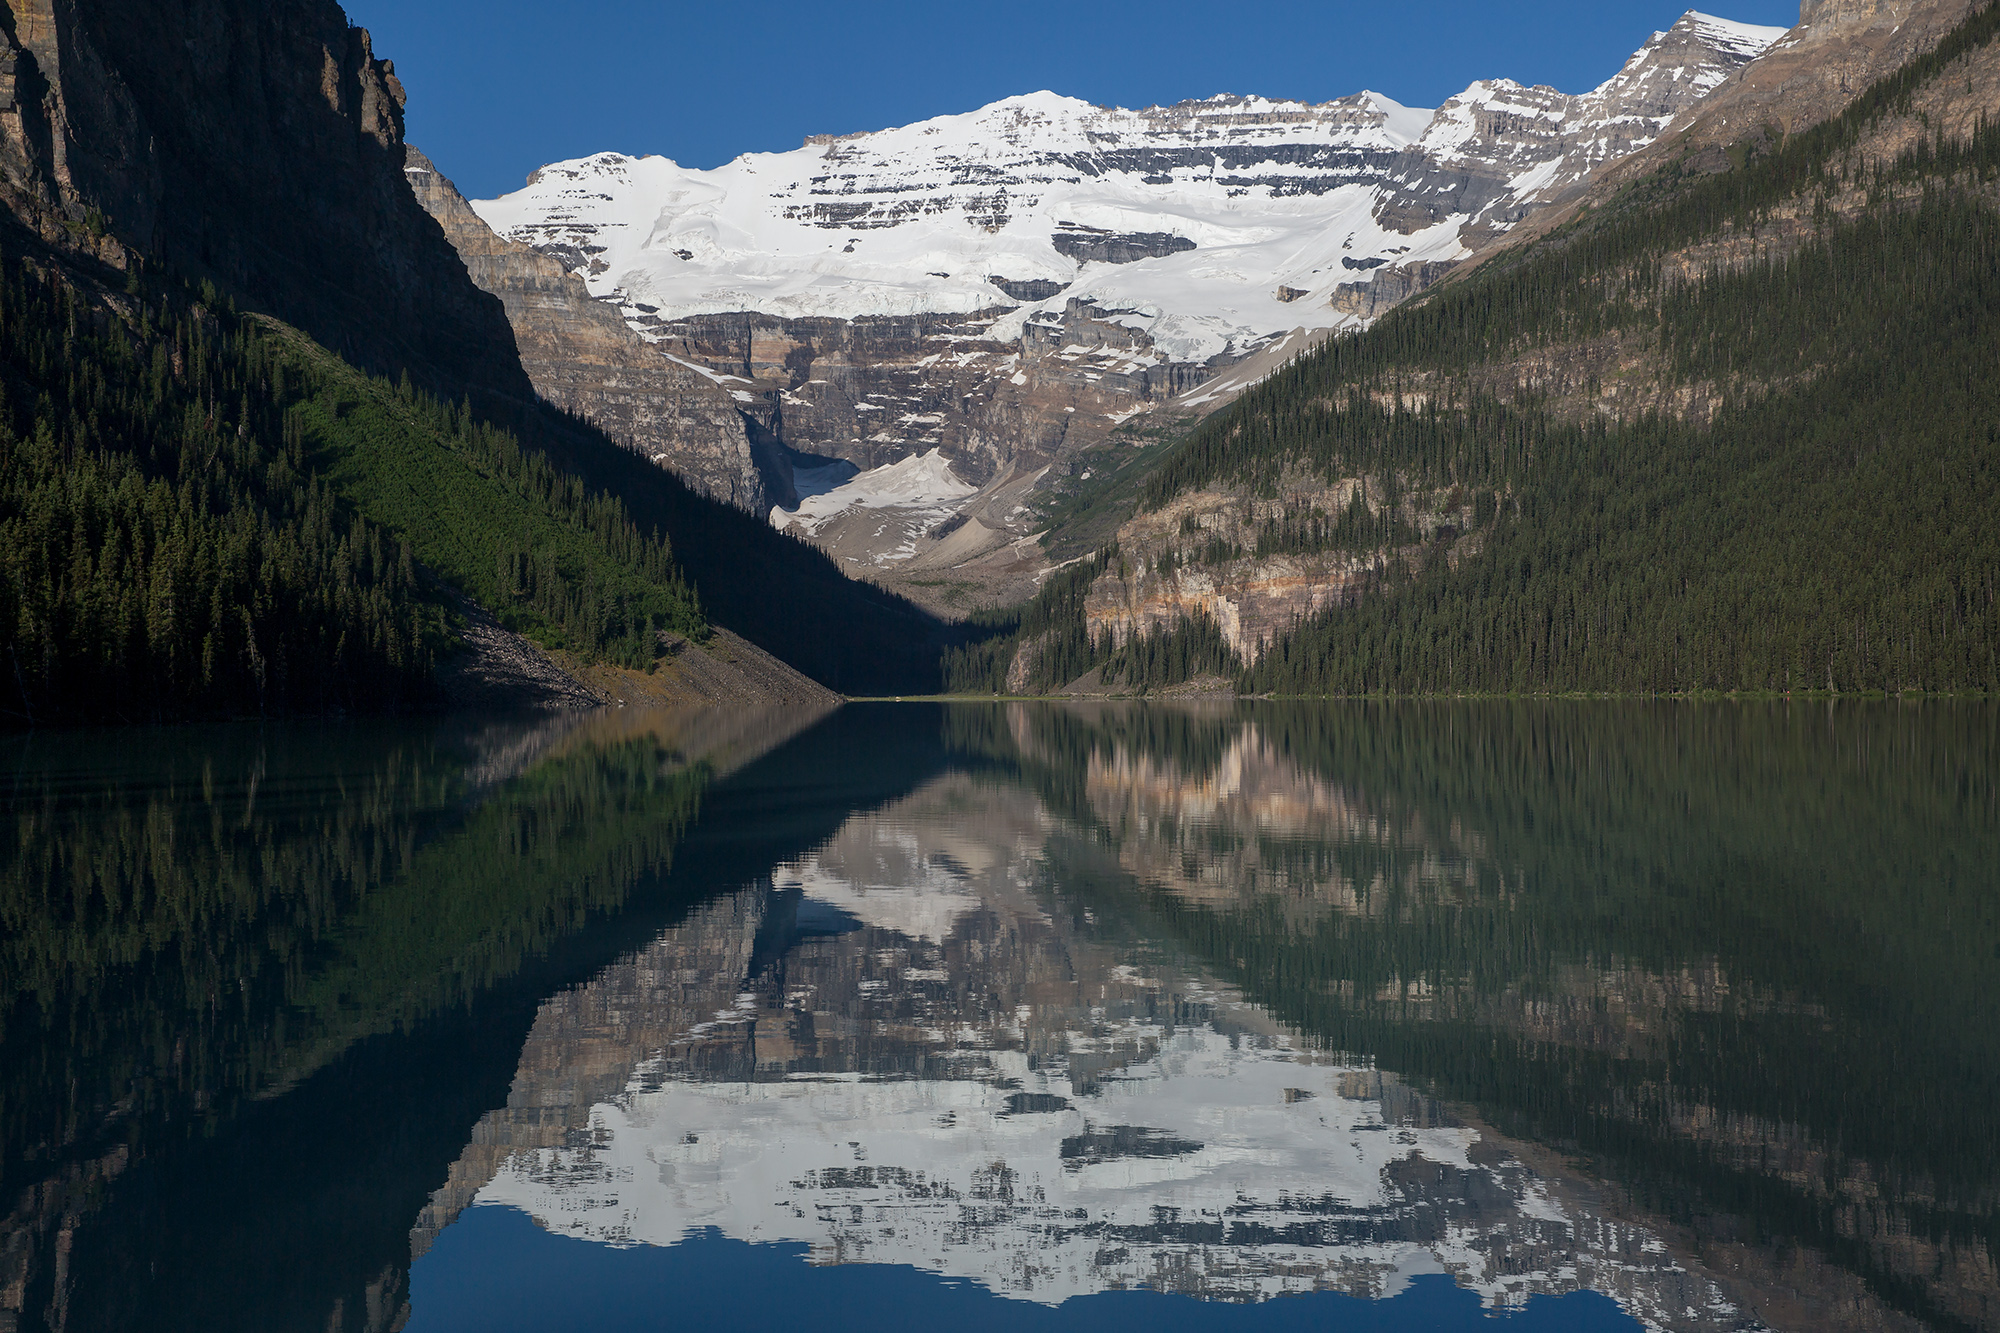 The still waters of Lake Louise shortly after sunrise in Banff National Park, Canada.